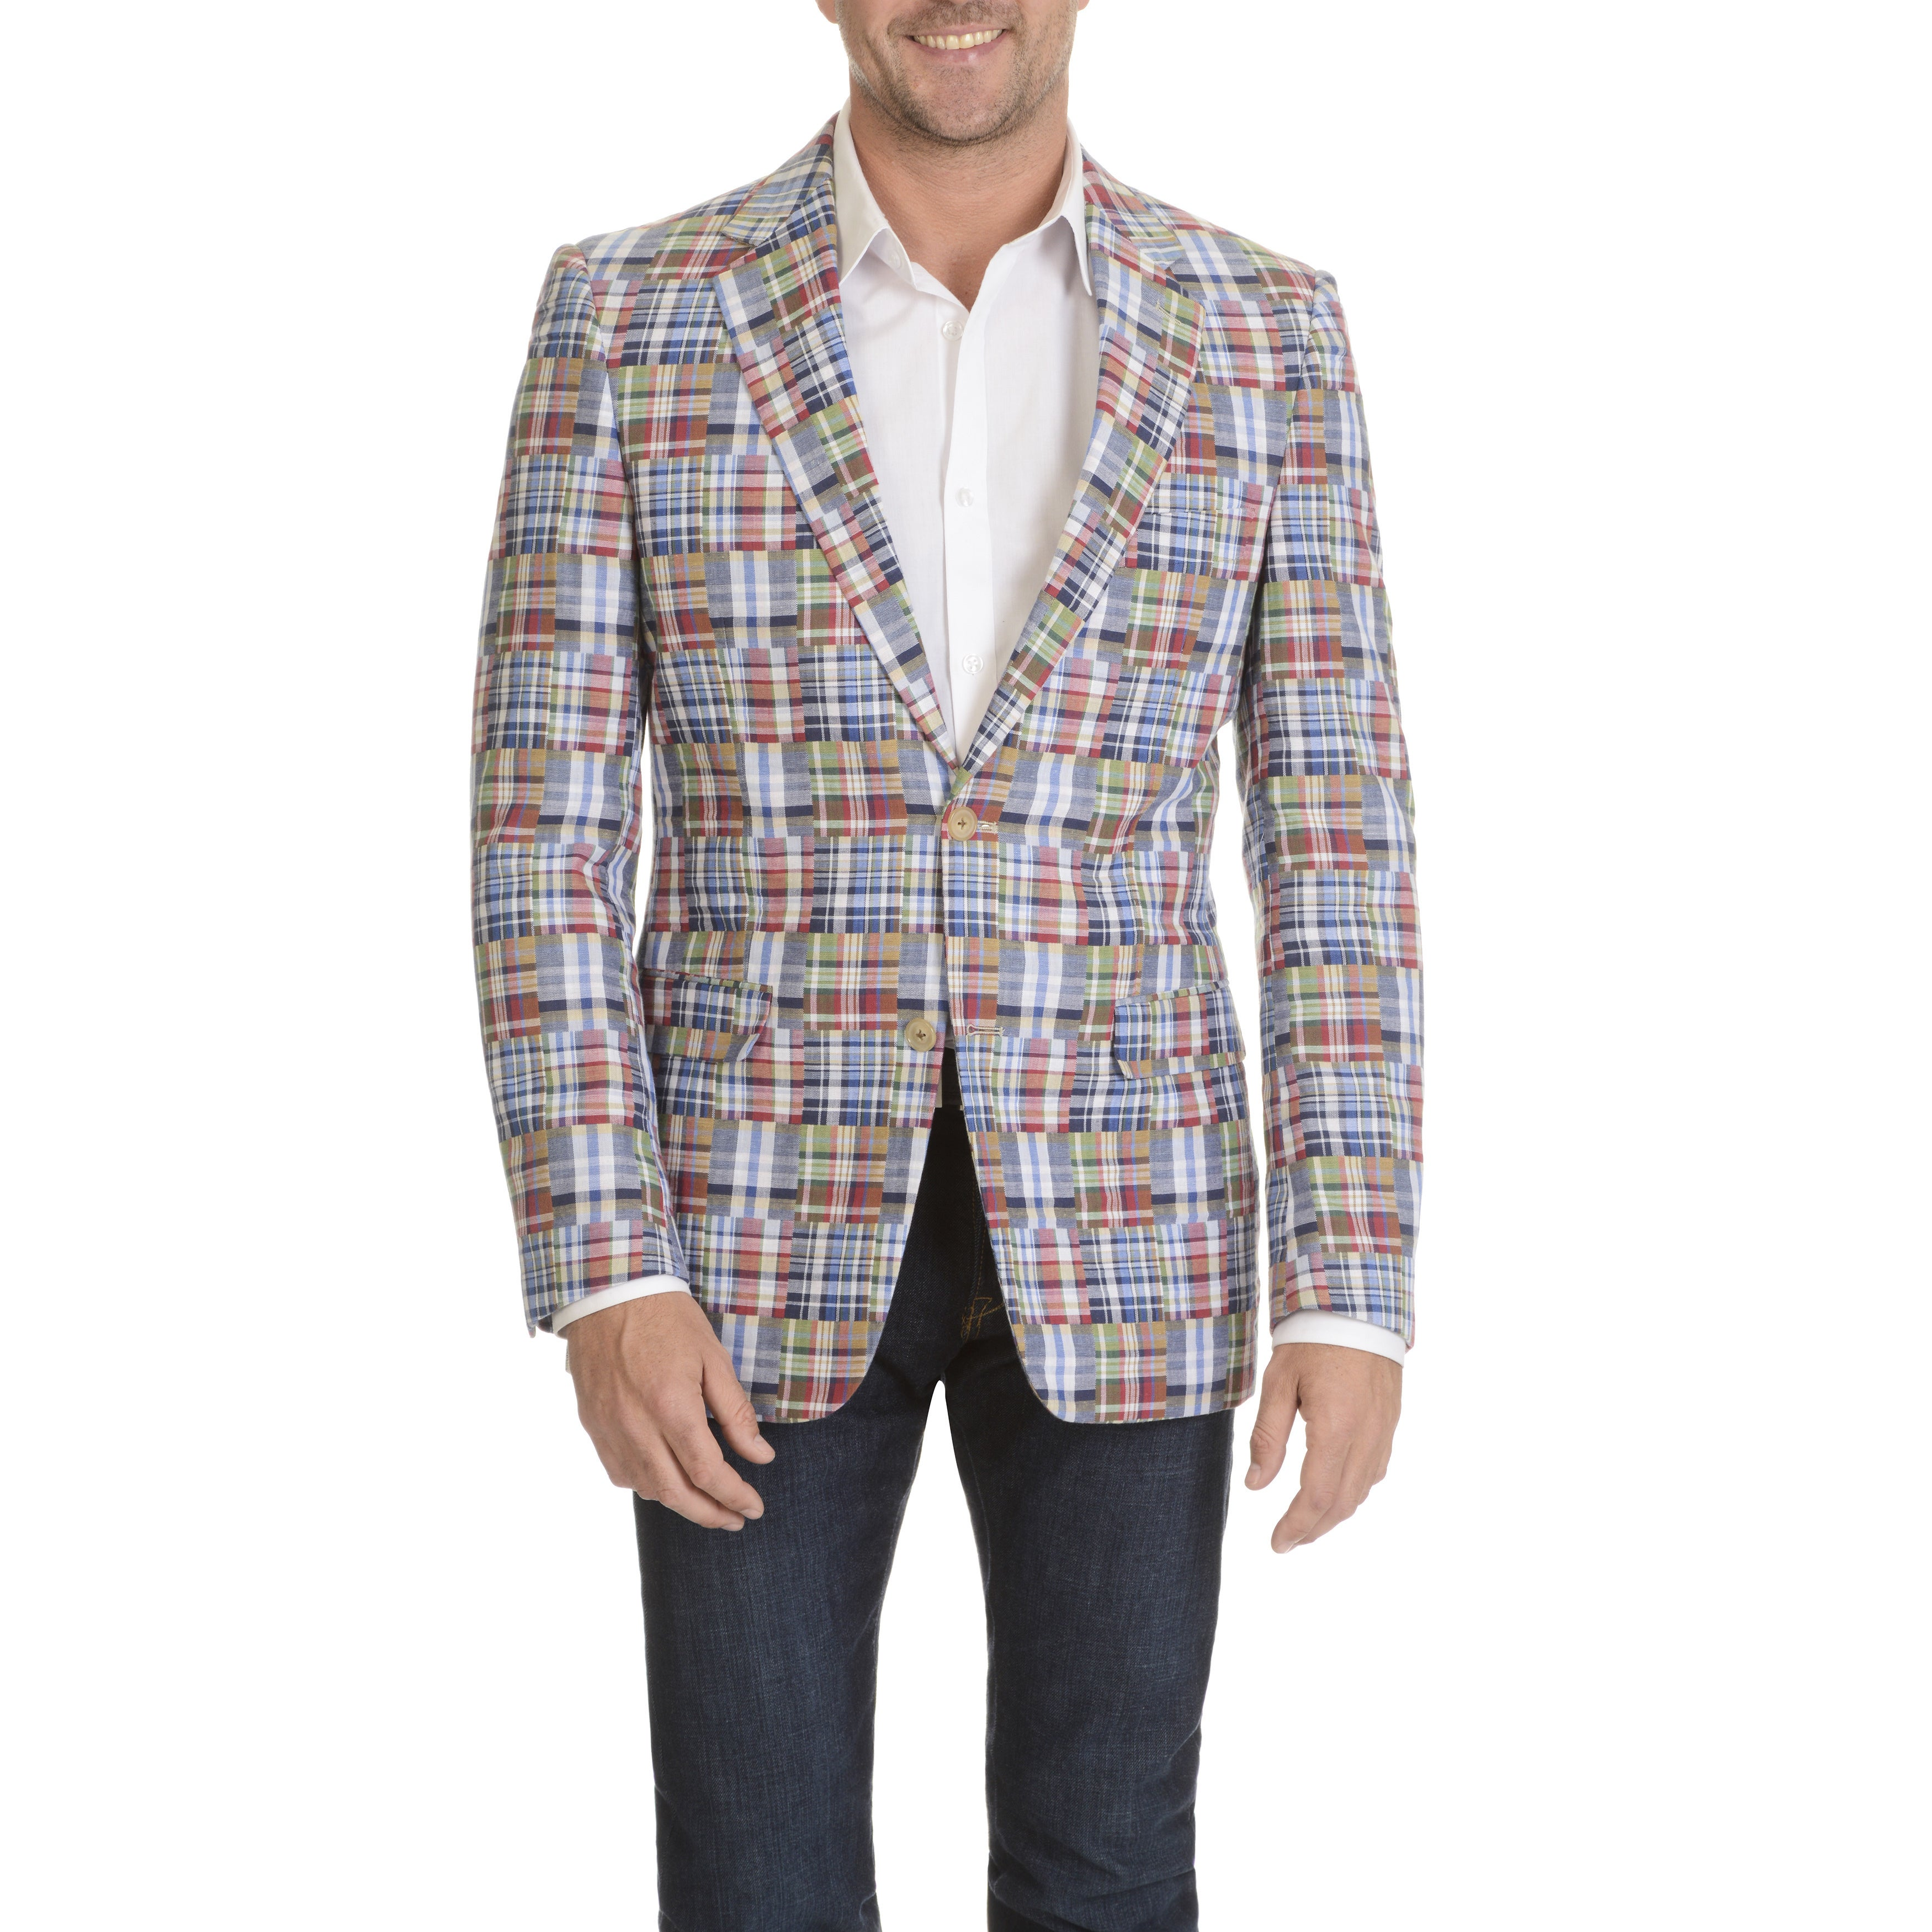 U.S. POLO ASSN Men's Madras Plaid 2 Button Sports Coat (4...